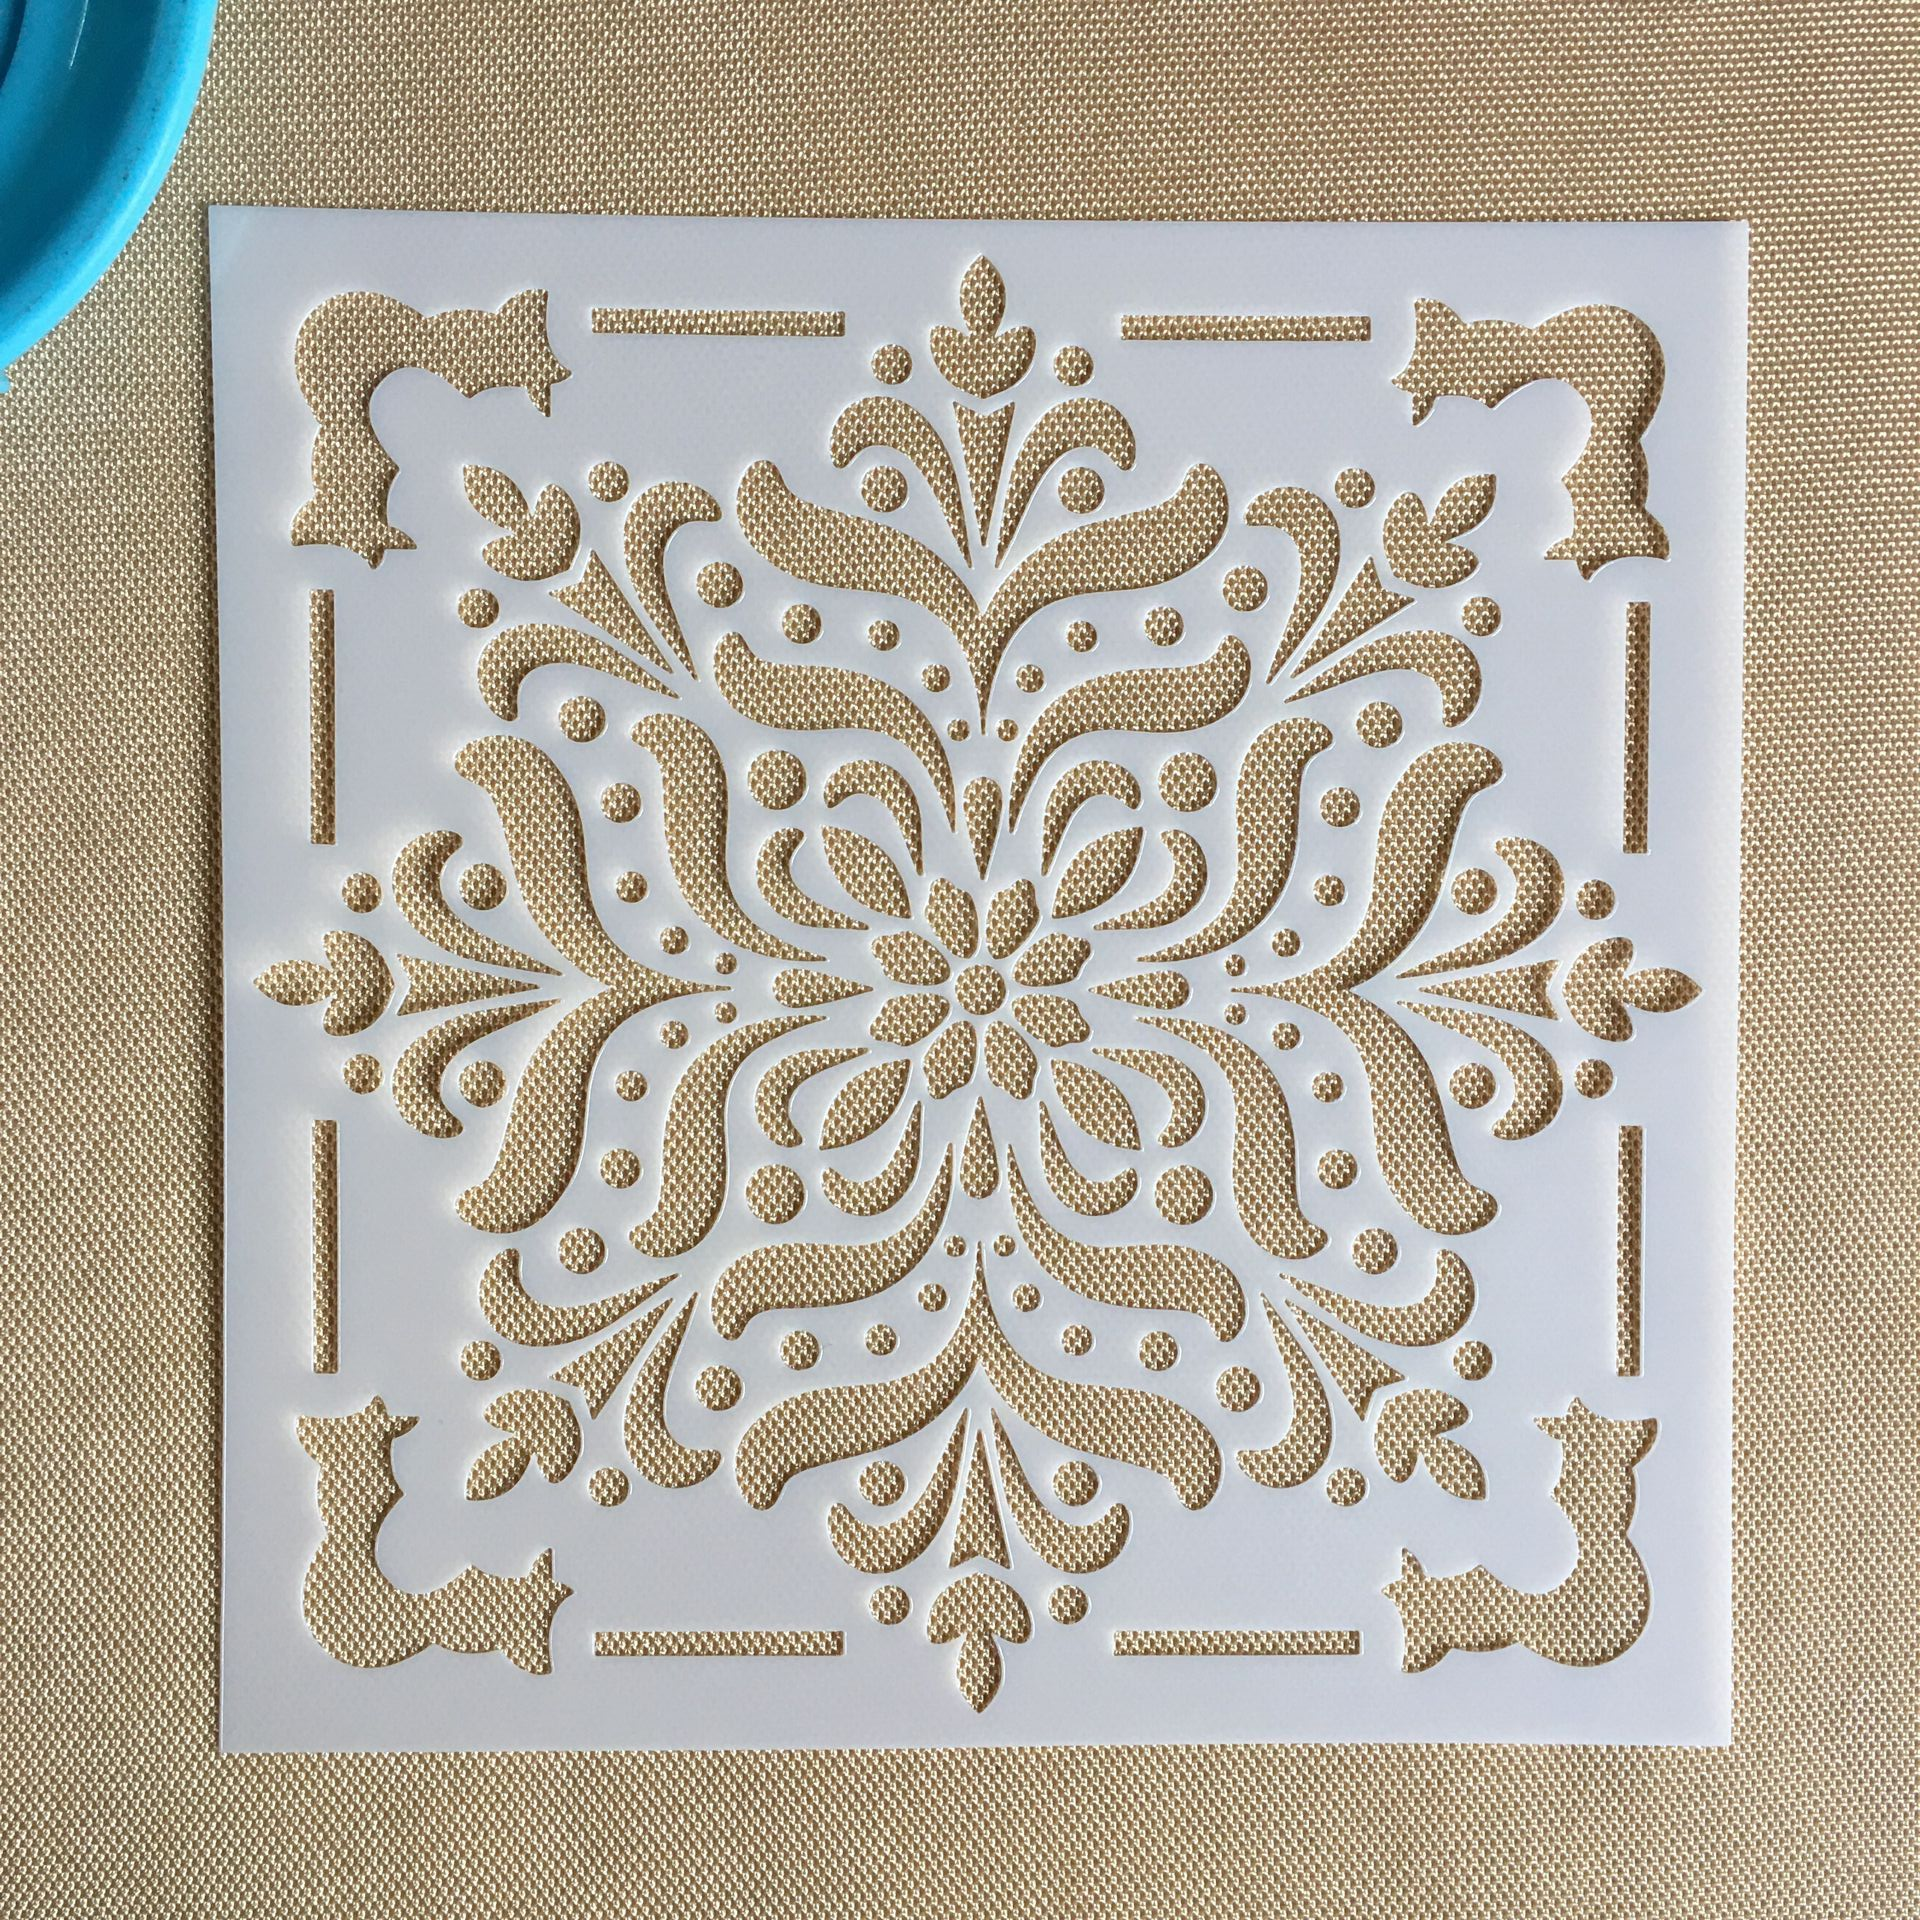 Mandala 1pc 15 * 15cm  mold DIY home decoration drawing template laser cutting wall painting tile tiles stencil